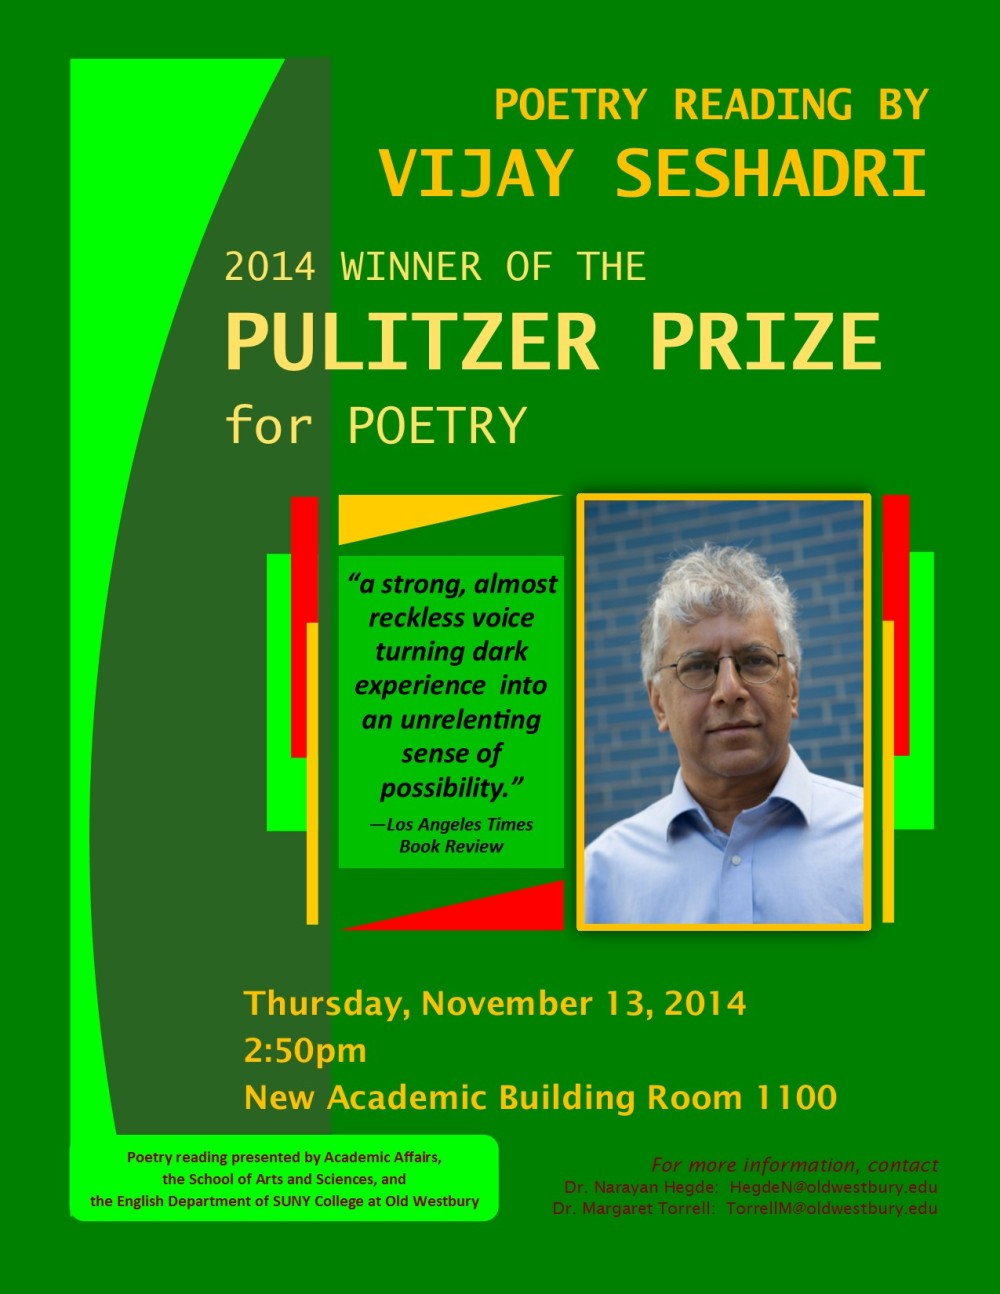 SESHADRI FLYER FINAL